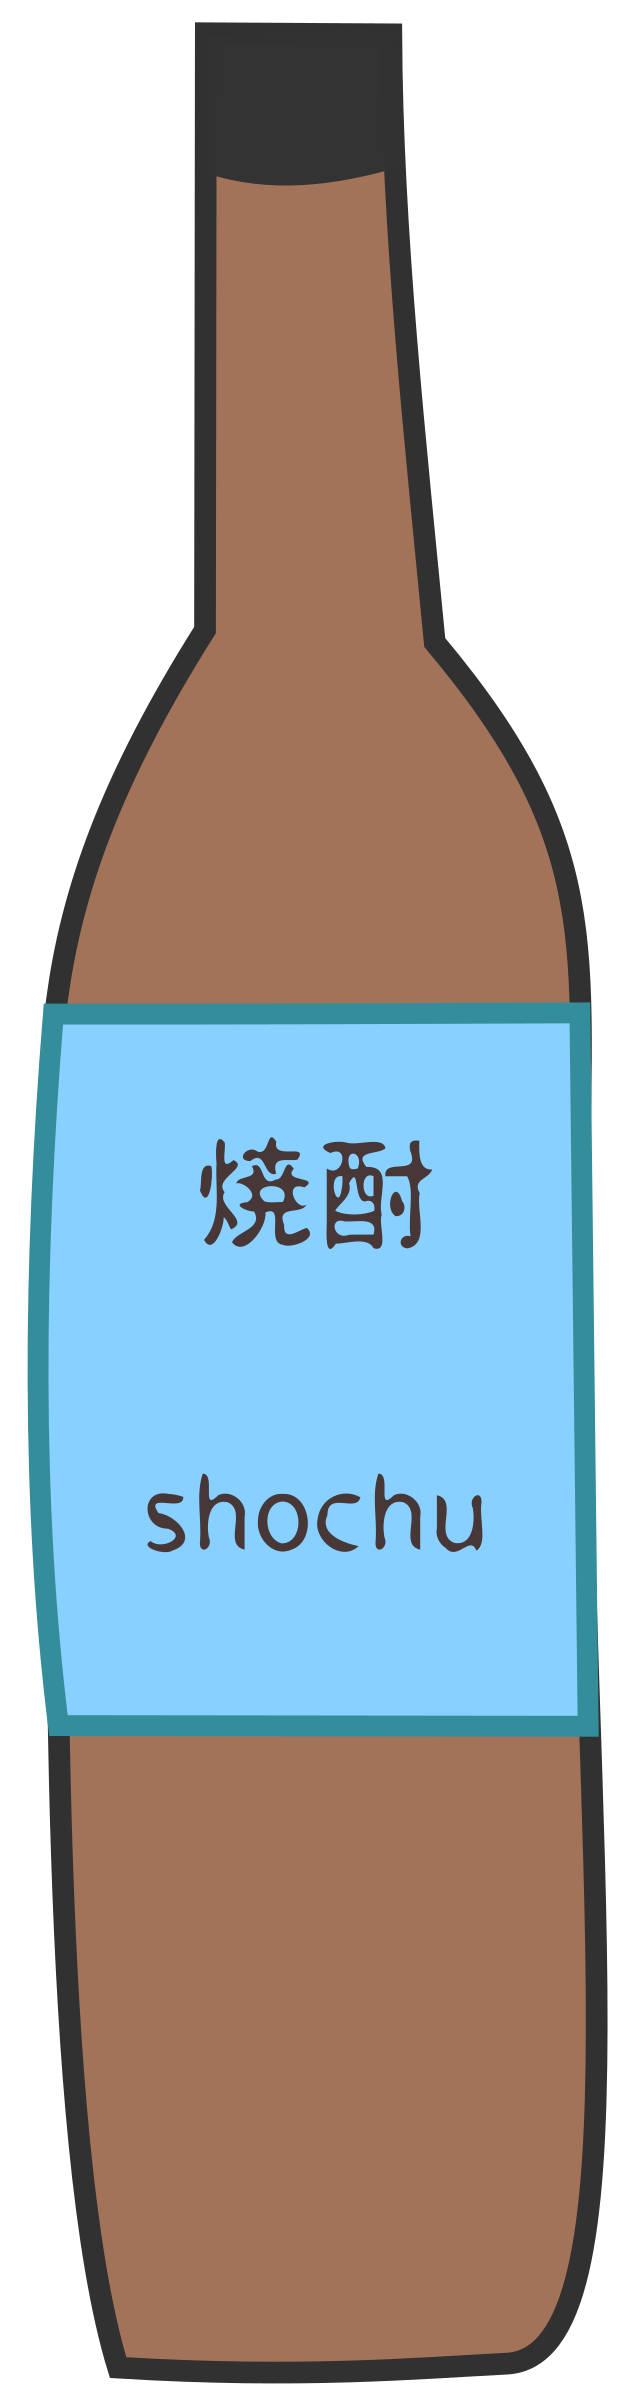 Shochu Bottle by j4p4n